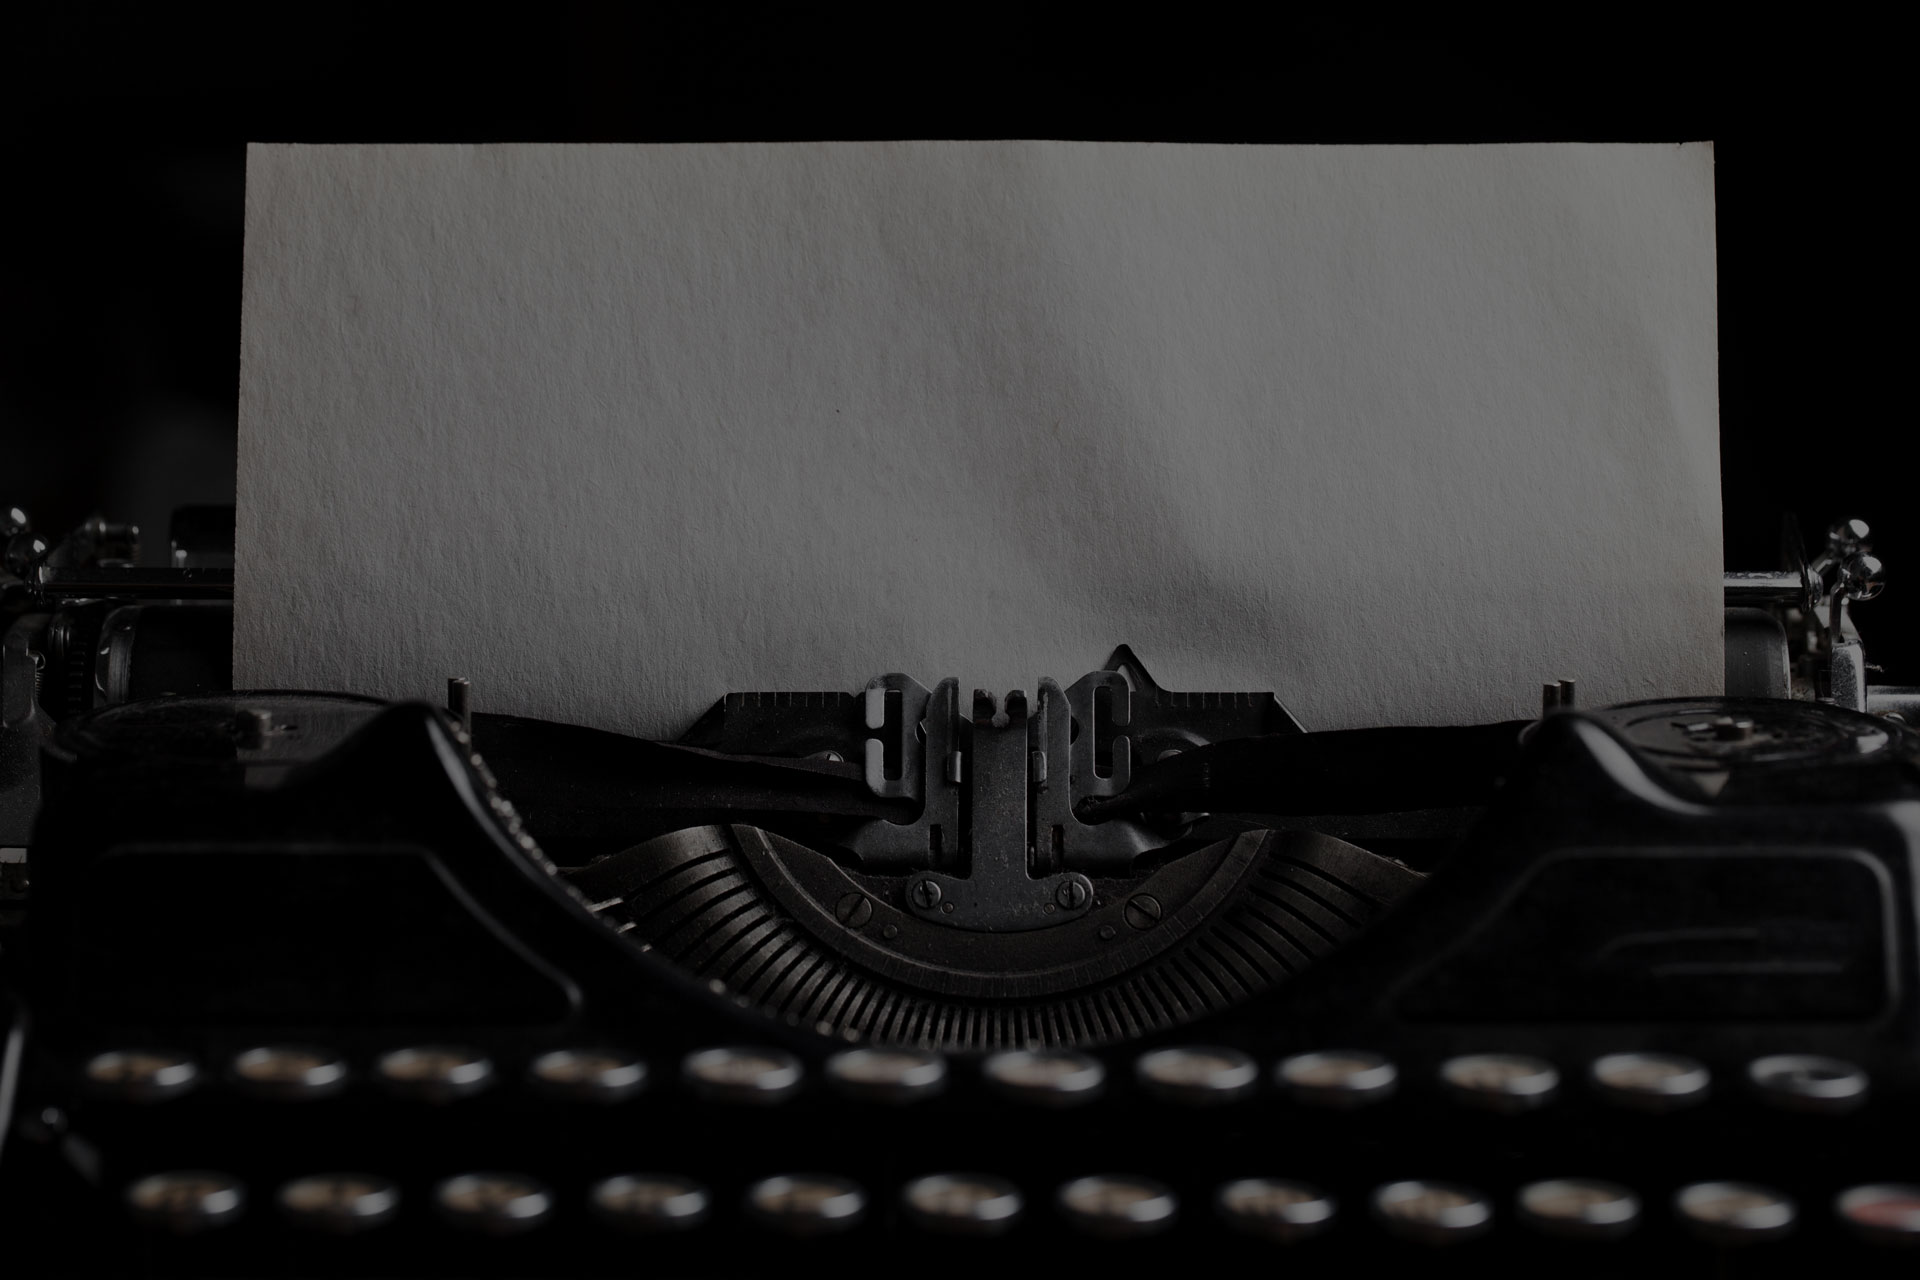 typewriter with paper sheet. Space for your text - Image